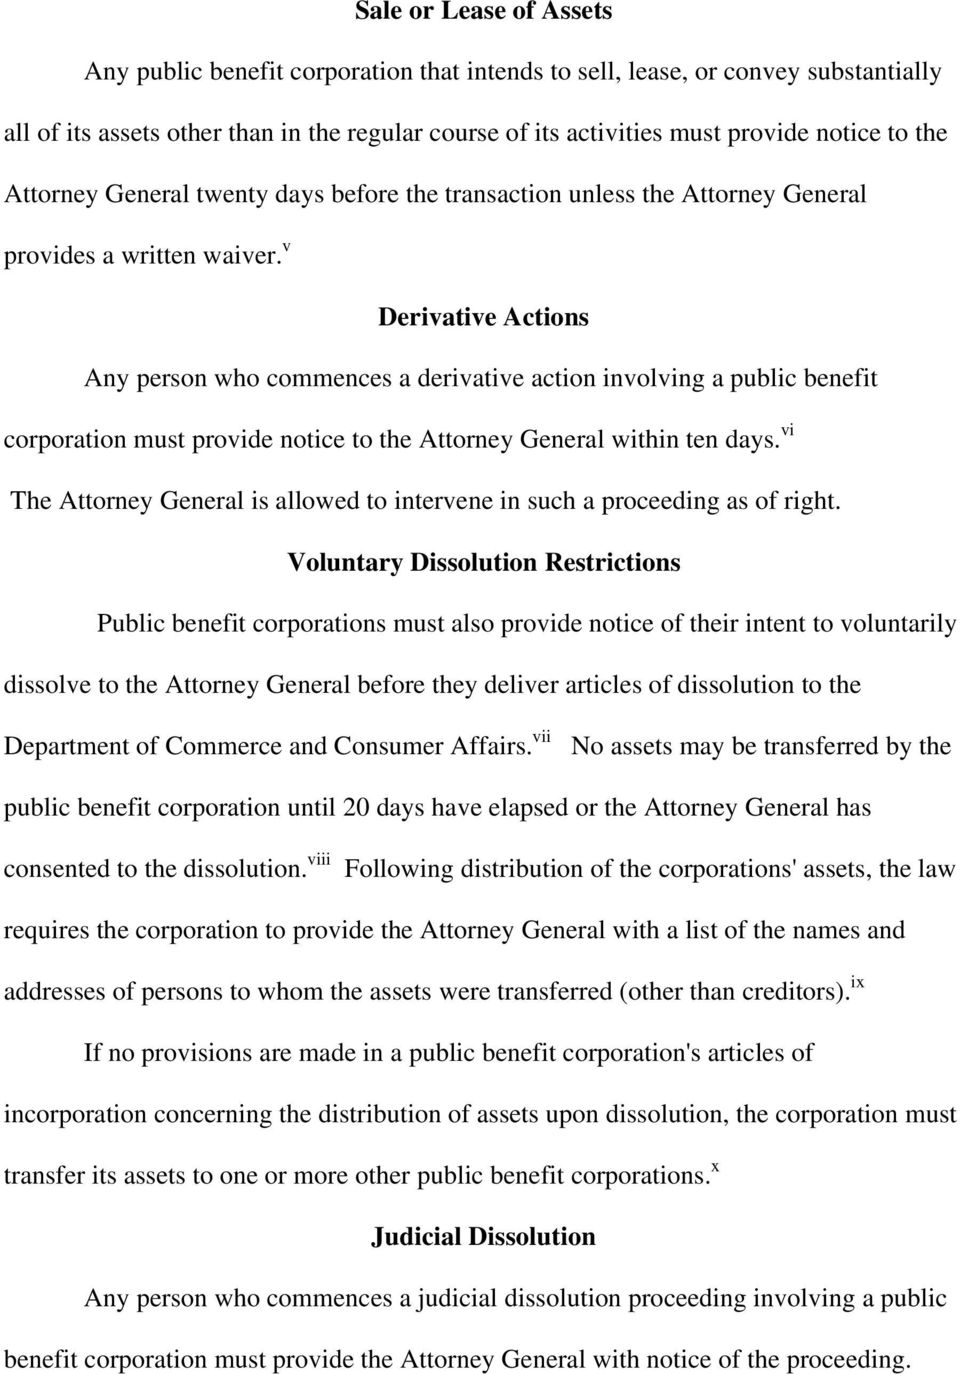 v Derivative Actions Any person who commences a derivative action involving a public benefit corporation must provide notice to the Attorney General within ten days.